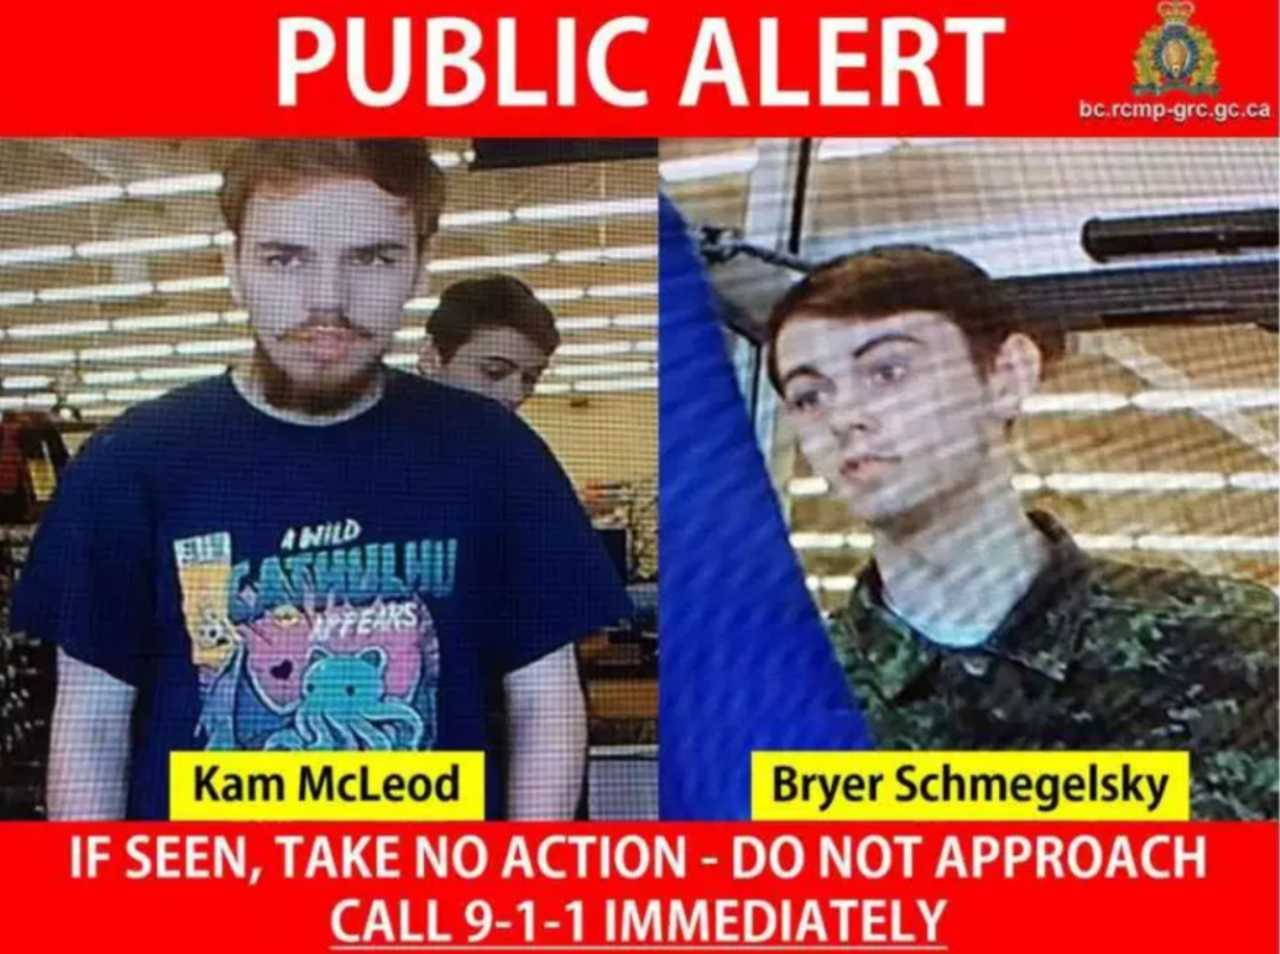 OPP Investigate Possible Sightings of BC Murder Suspects